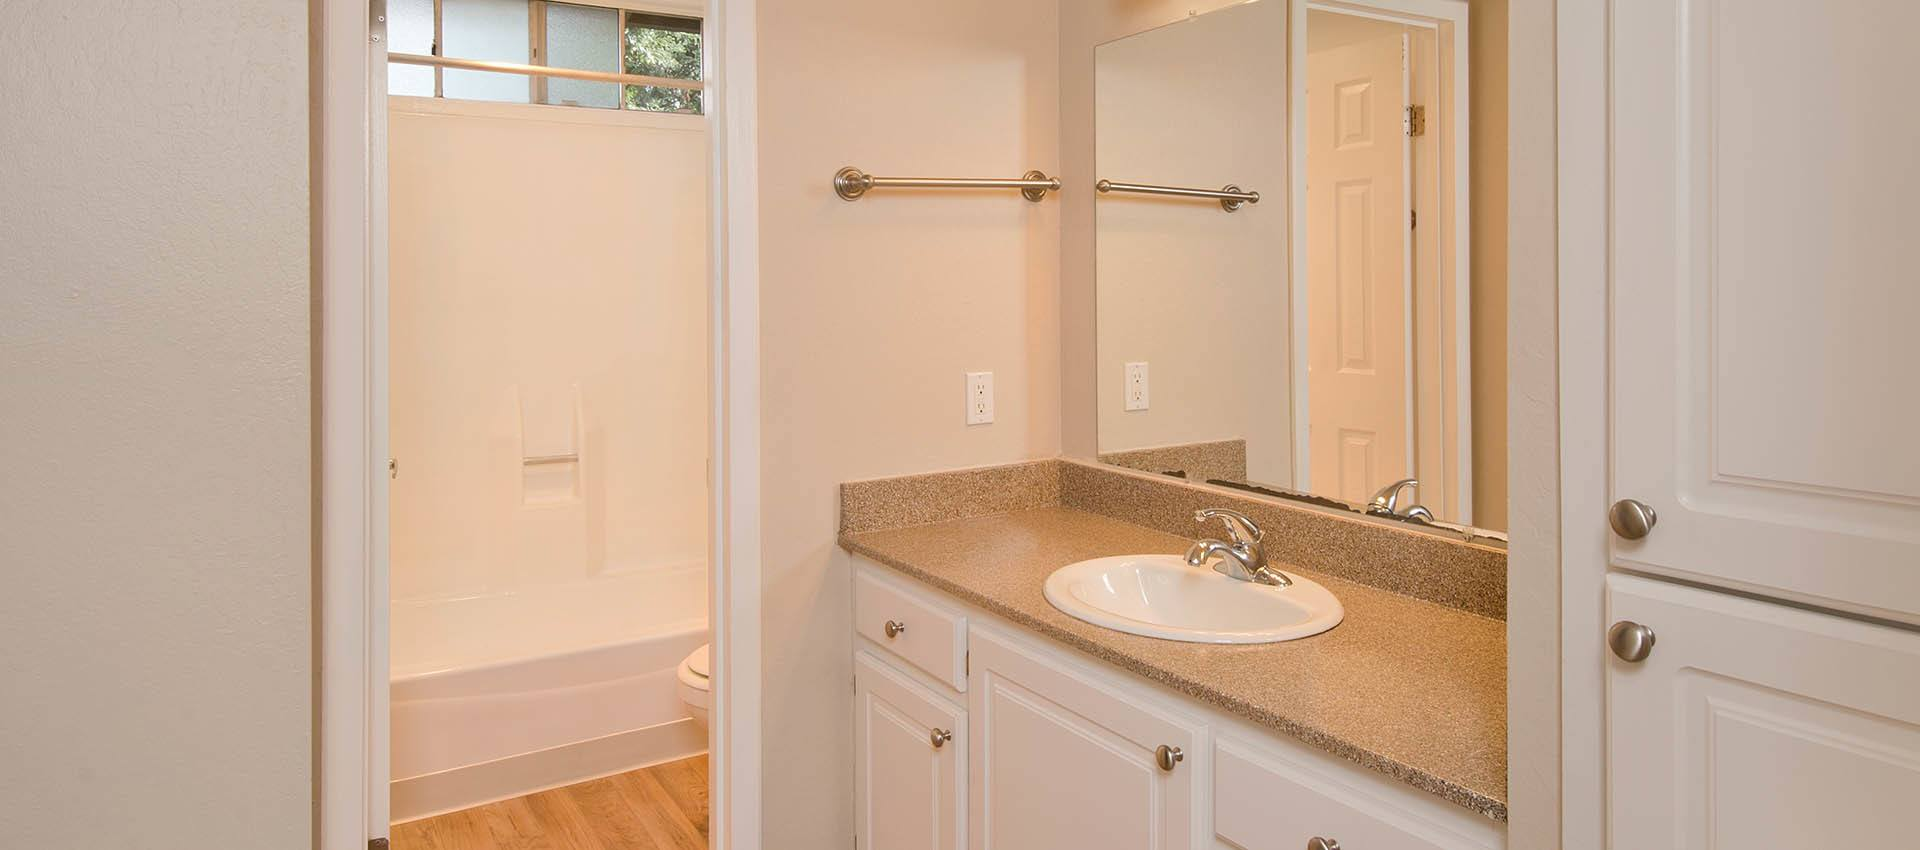 Bathroom With White Cabinets at Shadow Oaks Apartment Homes in Cupertino